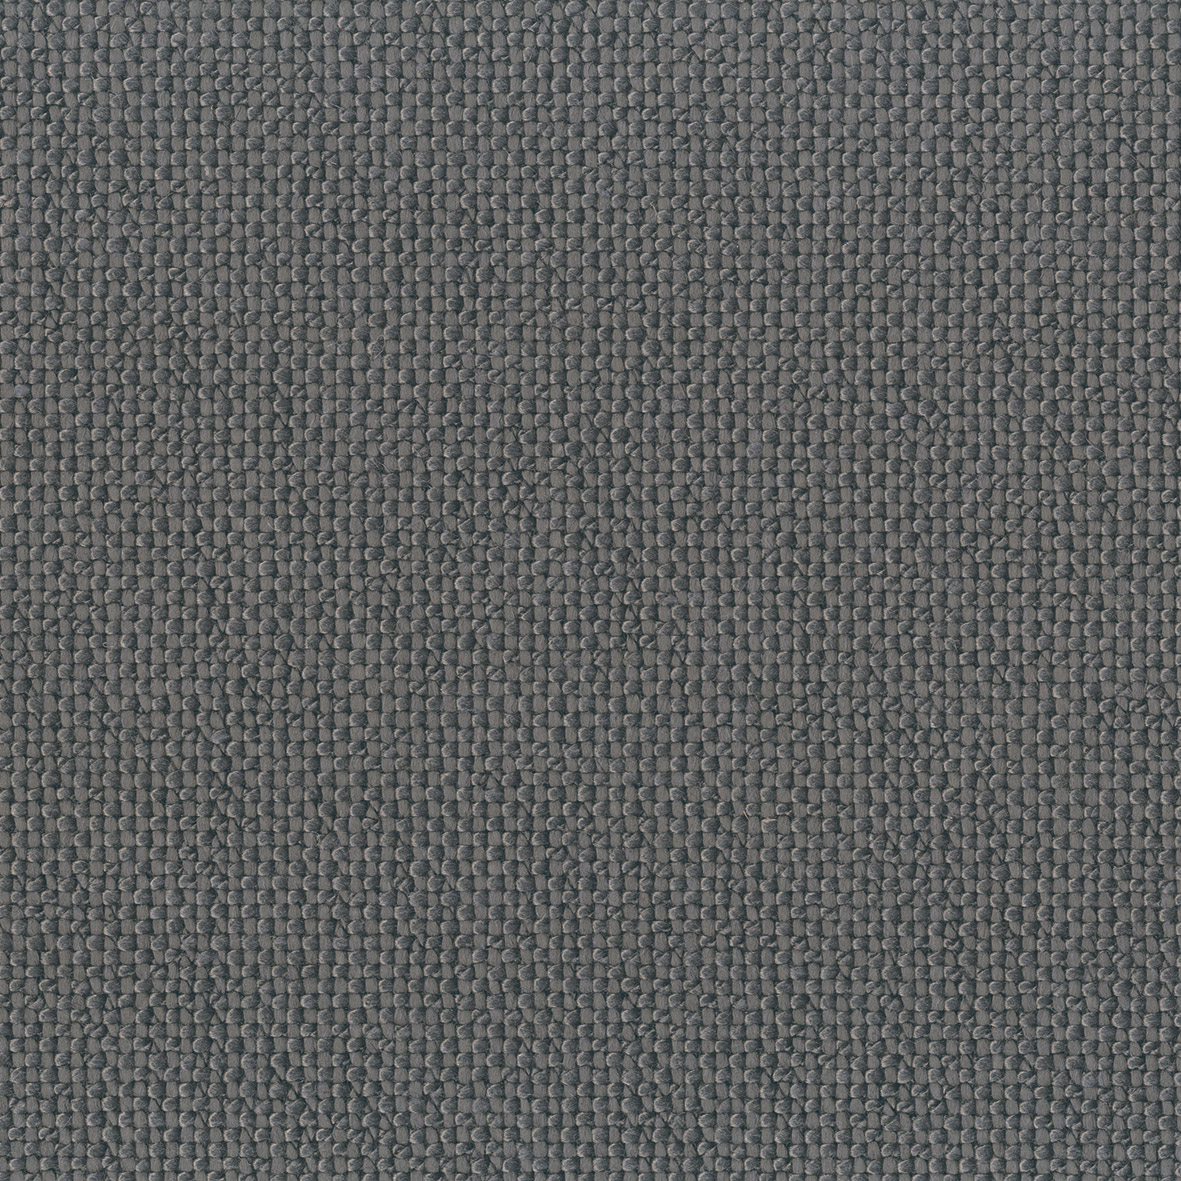 Could Any One Help Me In Creating Leather Texture